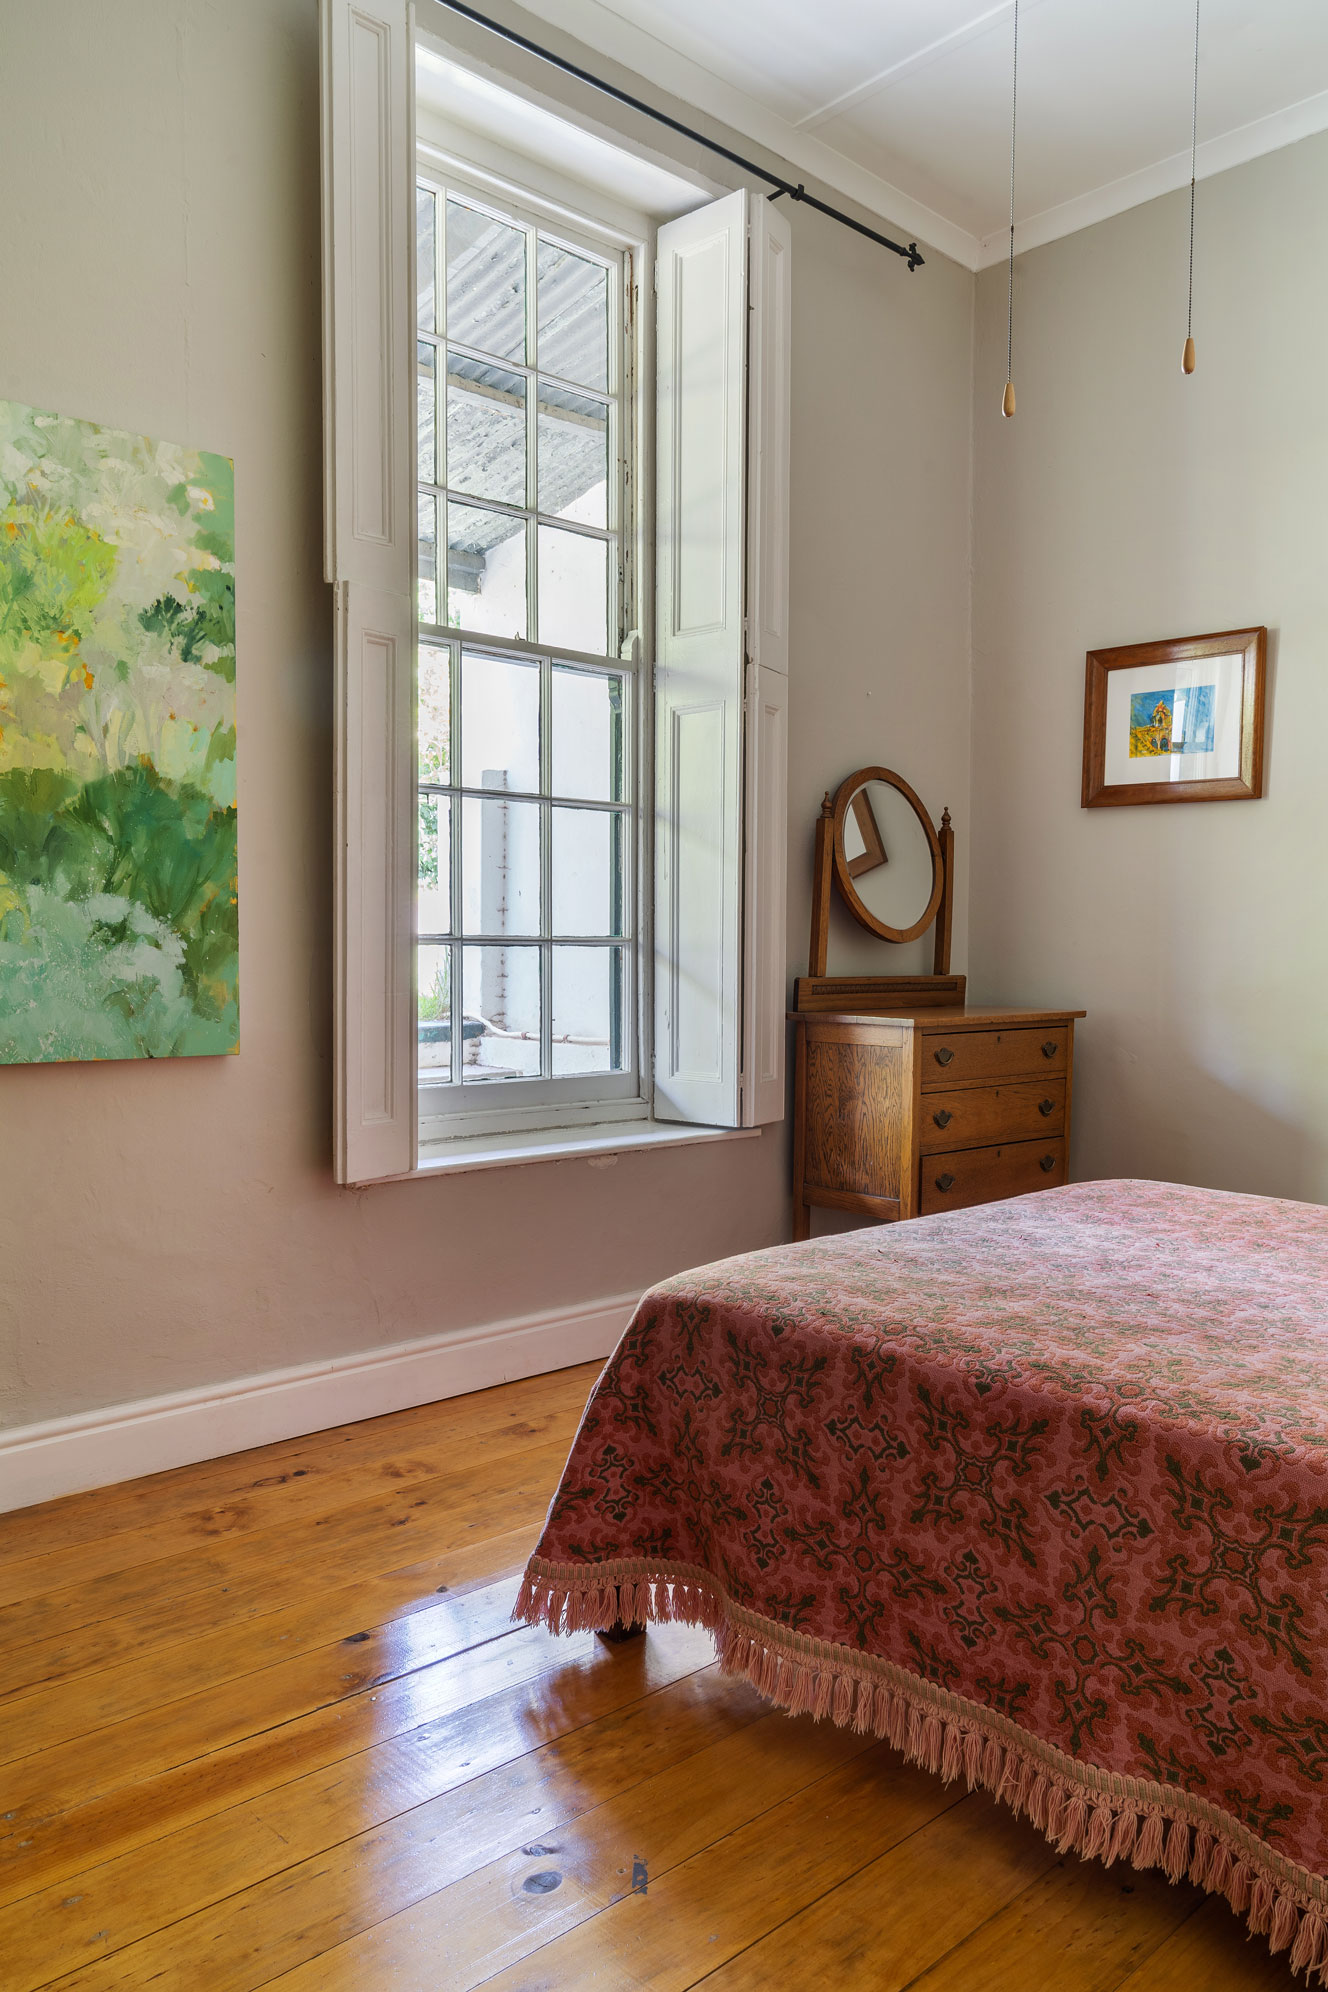 Pink and green bedroom with green art on the walls